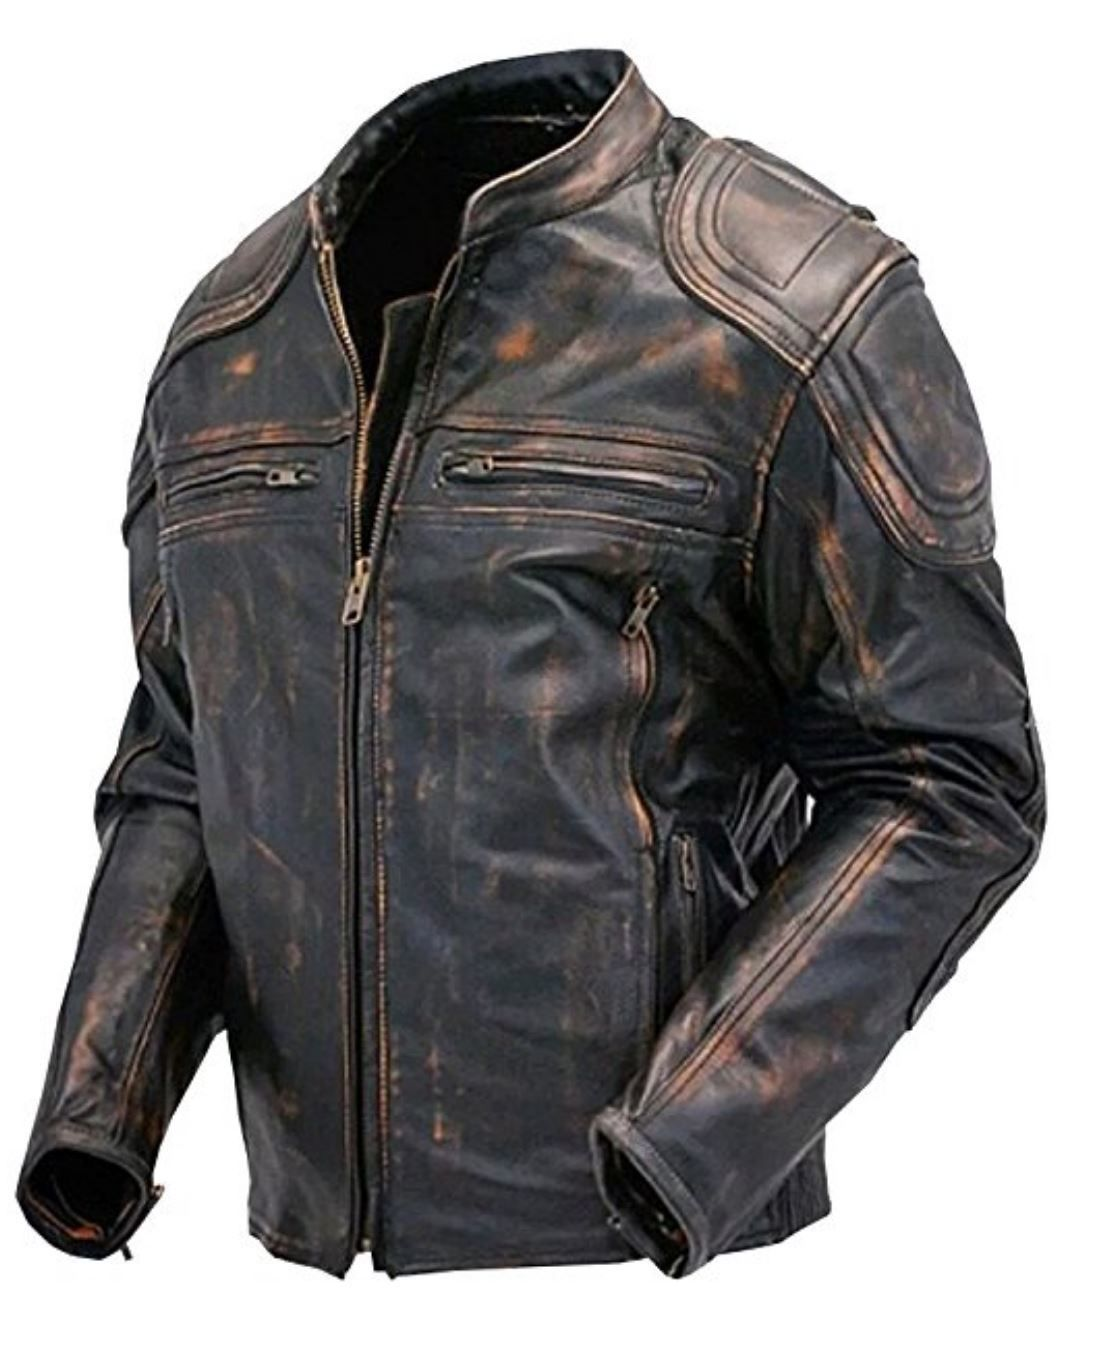 Herrenmode White Real Genuine Leather Jacket For Men Biker Retro Sheep Skin Cafe Racer Kleidung & Accessoires